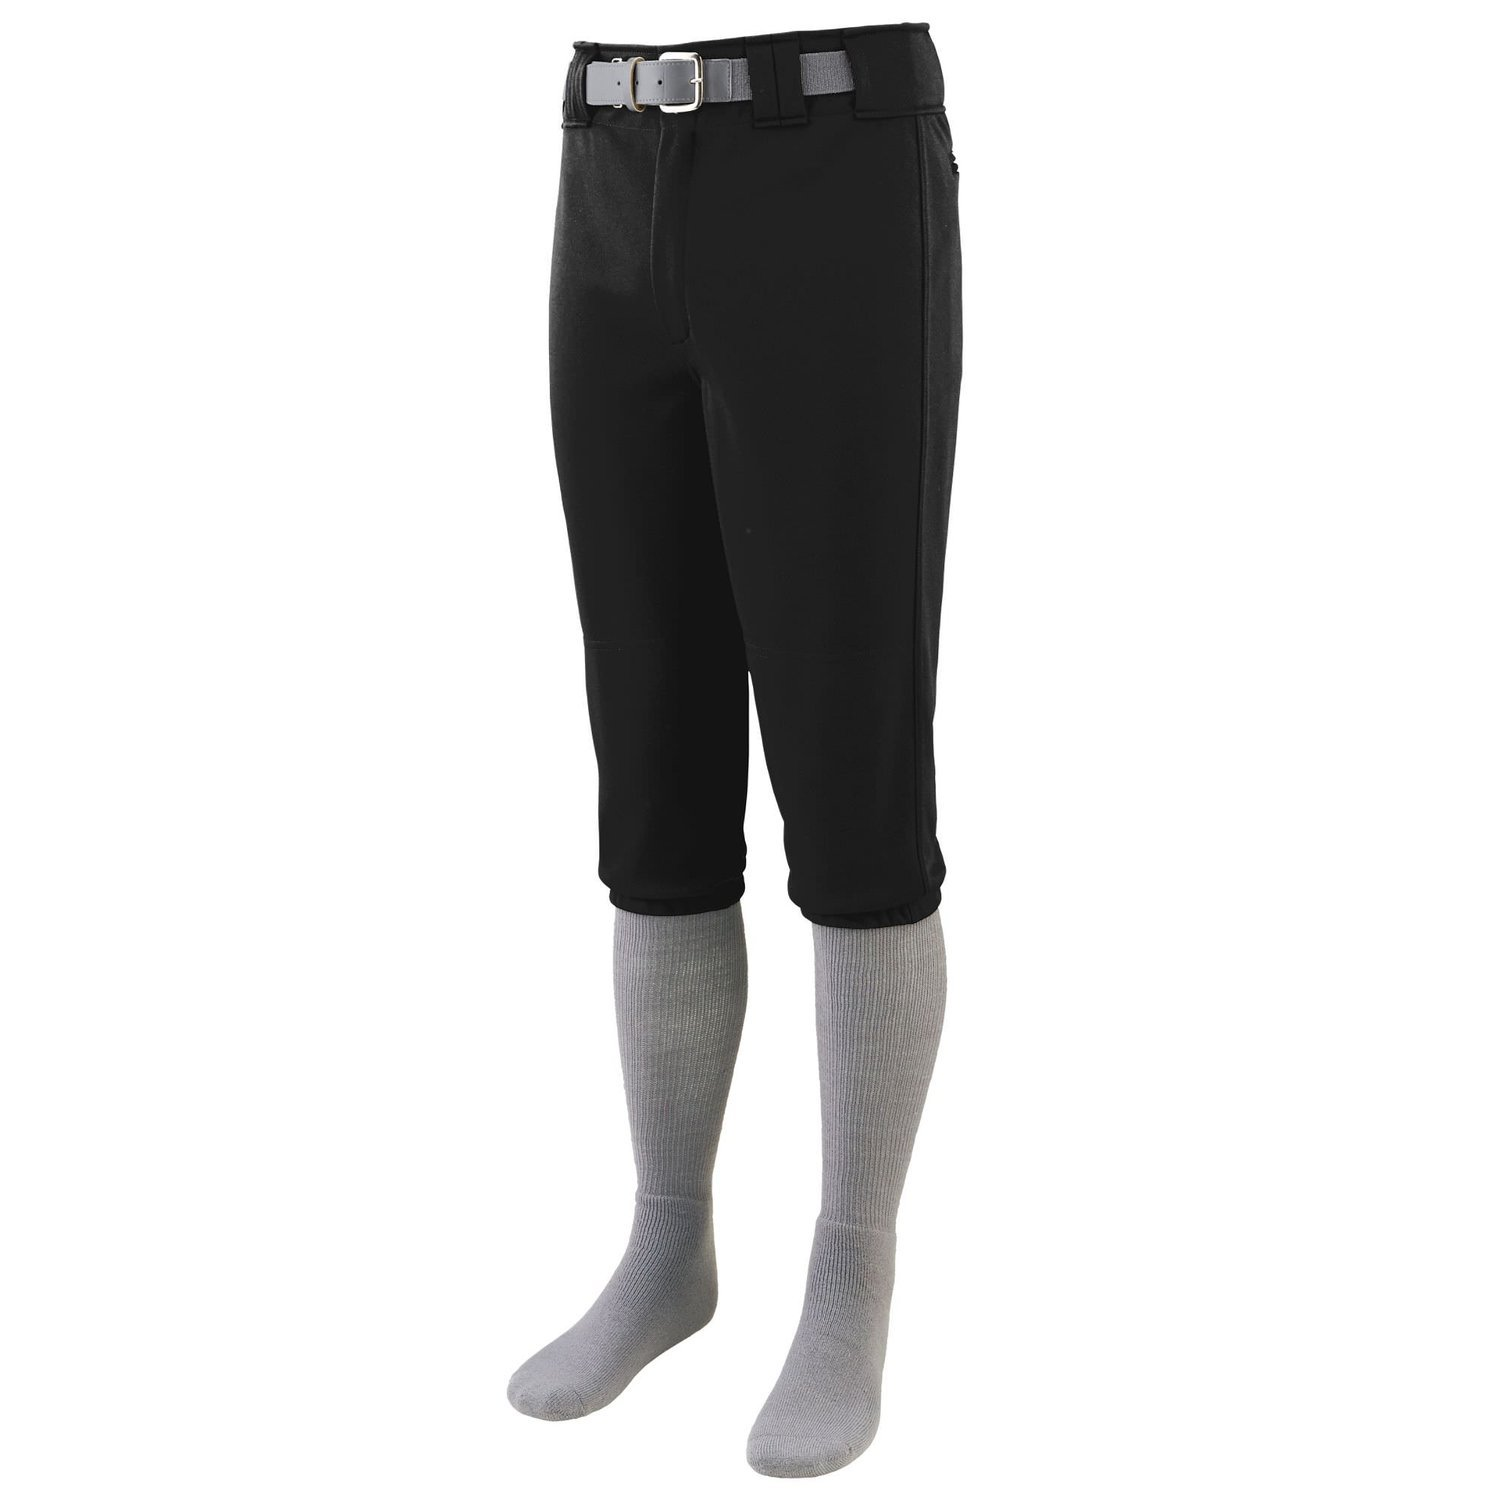 Augusta Sportswear Men's Series Knee Length Baseball Pant - Black 1452A XL